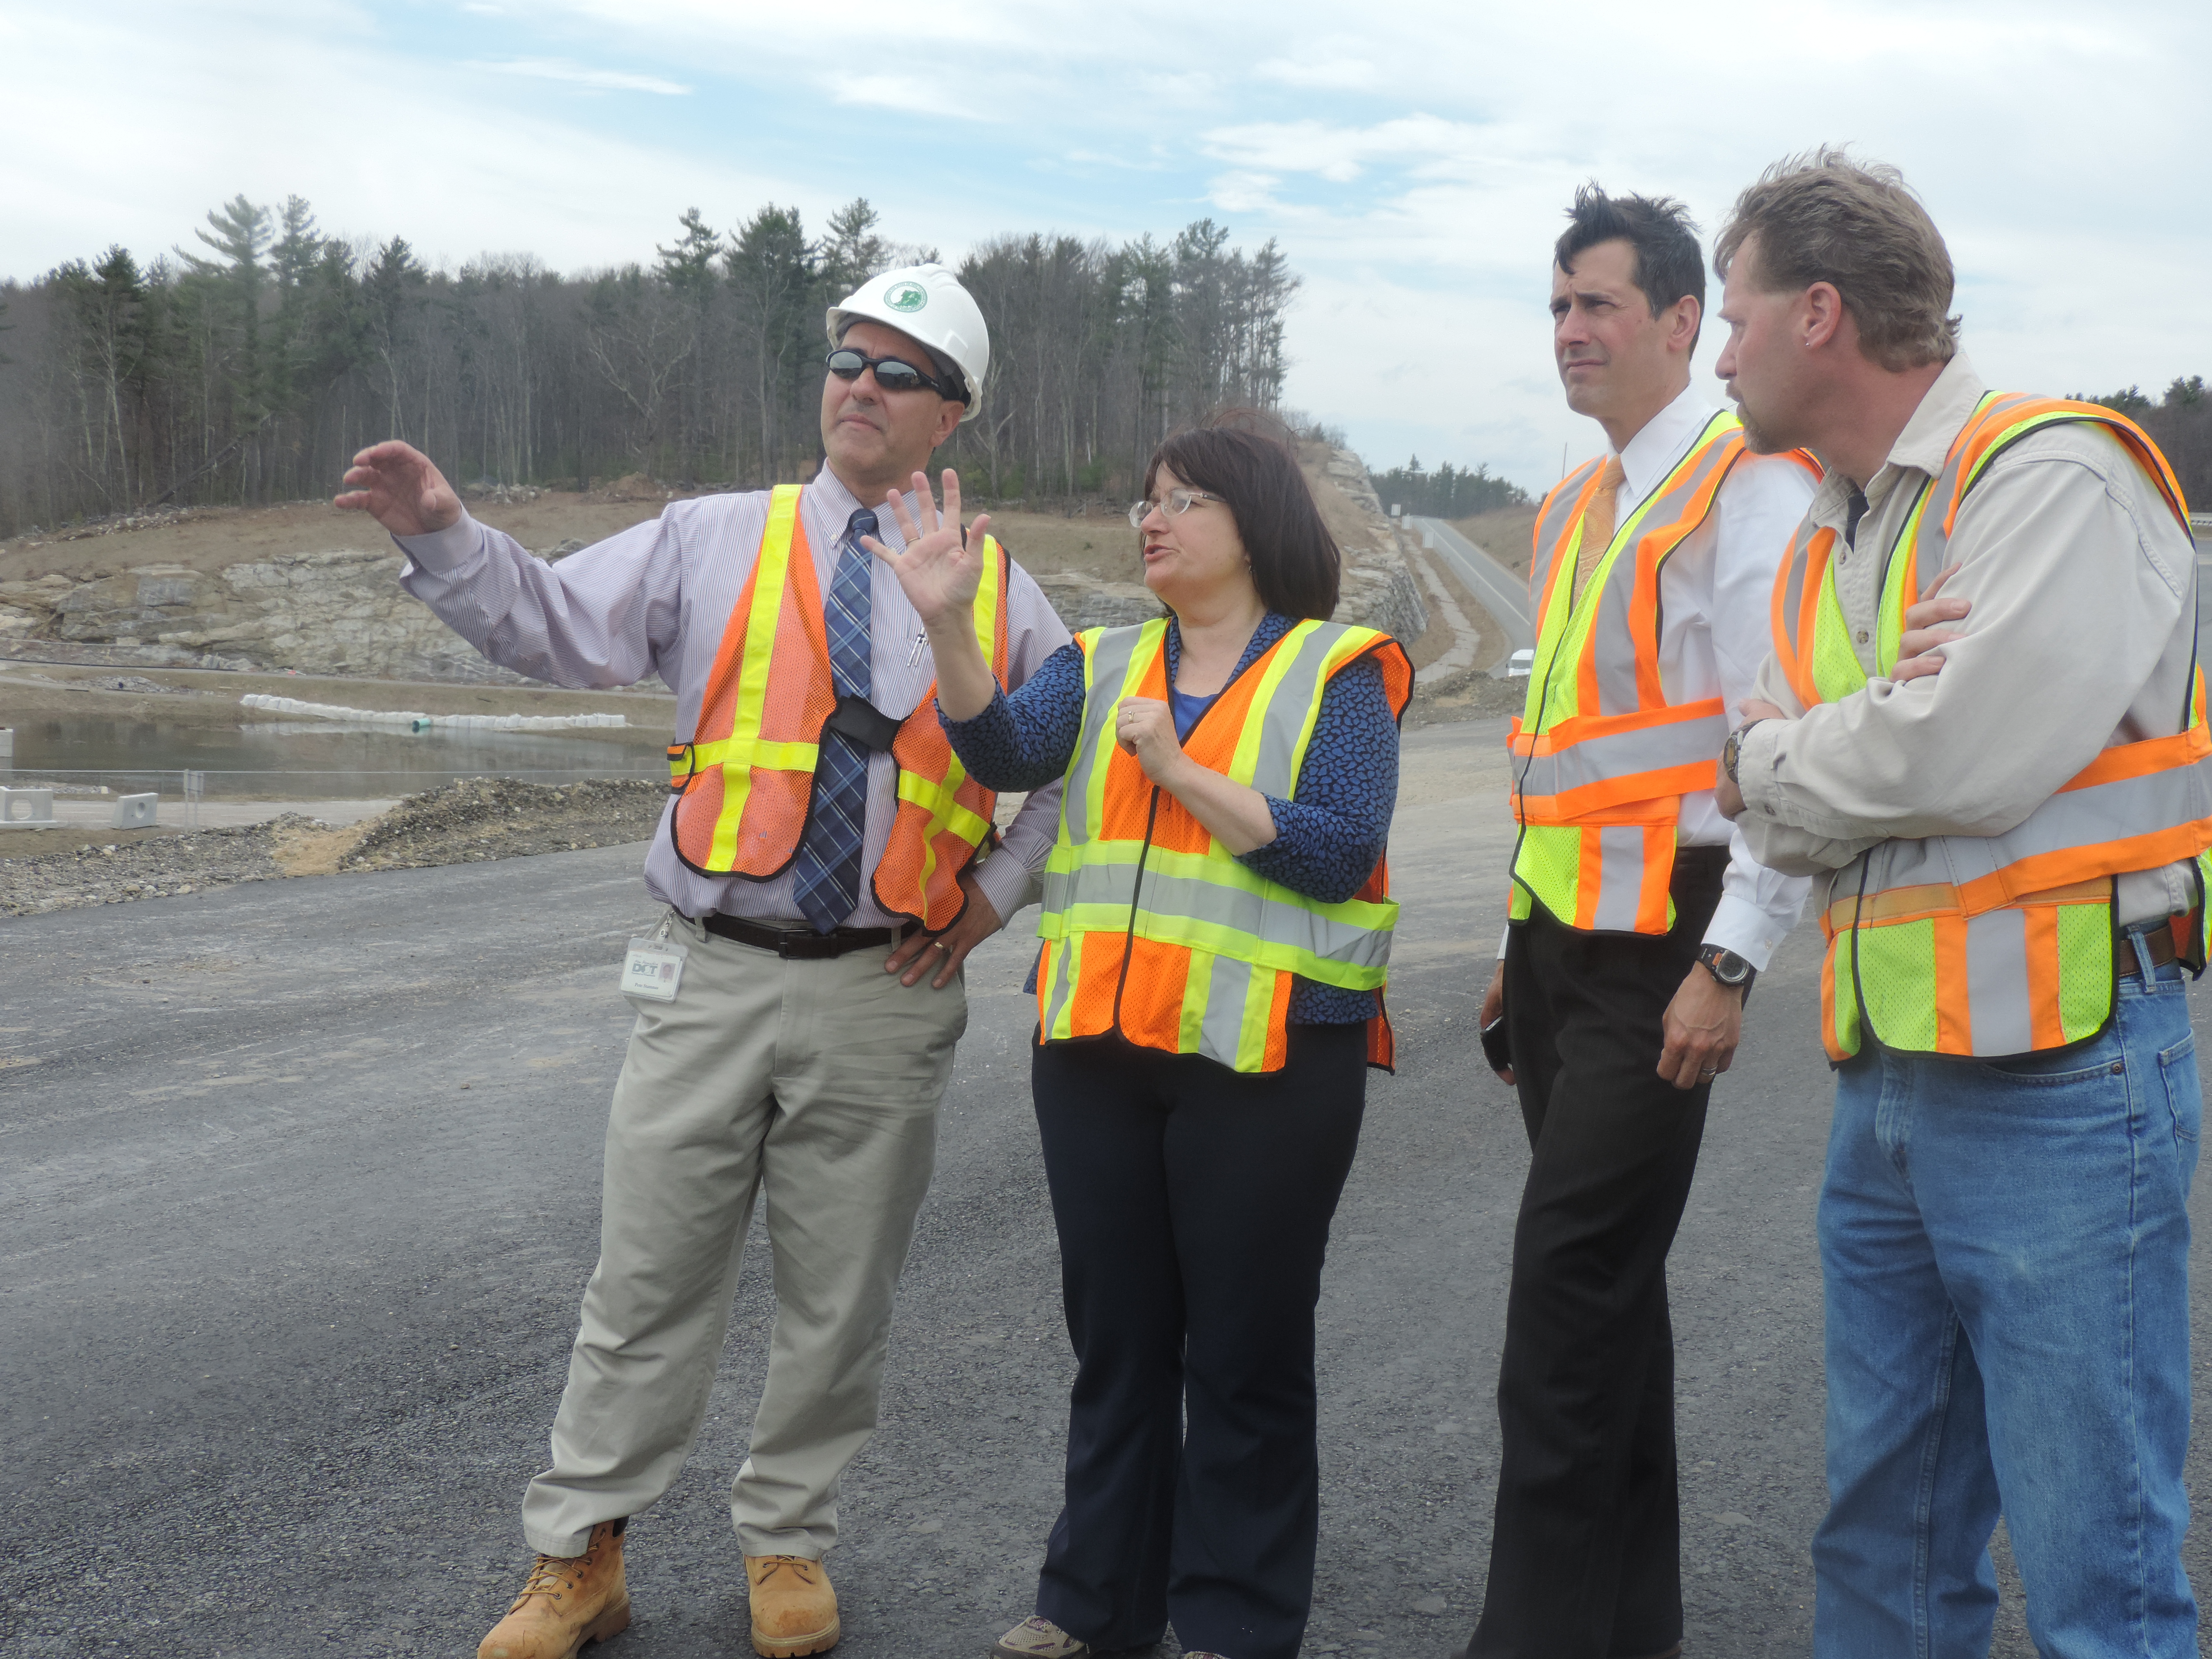 (Monday, April 14, 2014 | Congresswoman Kuster hears from New Hampshire Department of Transportation officials about the importance of funding for the I-93 expansion.)